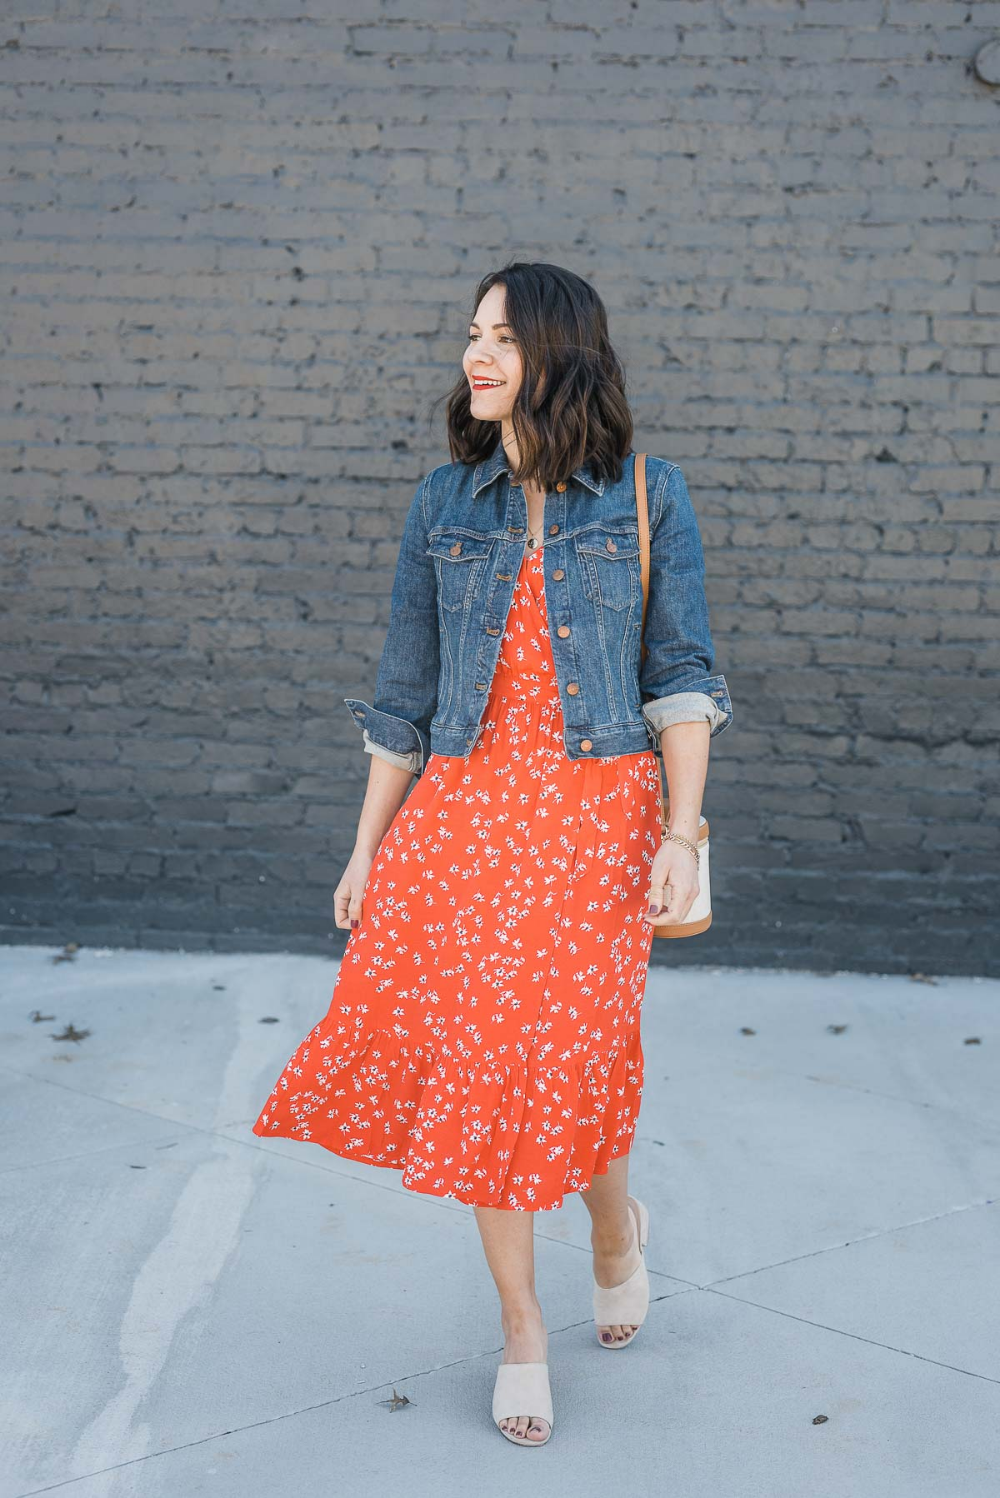 Red Summer Outfit Ideas An Indigo Day Denim Jacket With Dress Casual Summer Outfits Jacket Outfits [ 1498 x 1000 Pixel ]